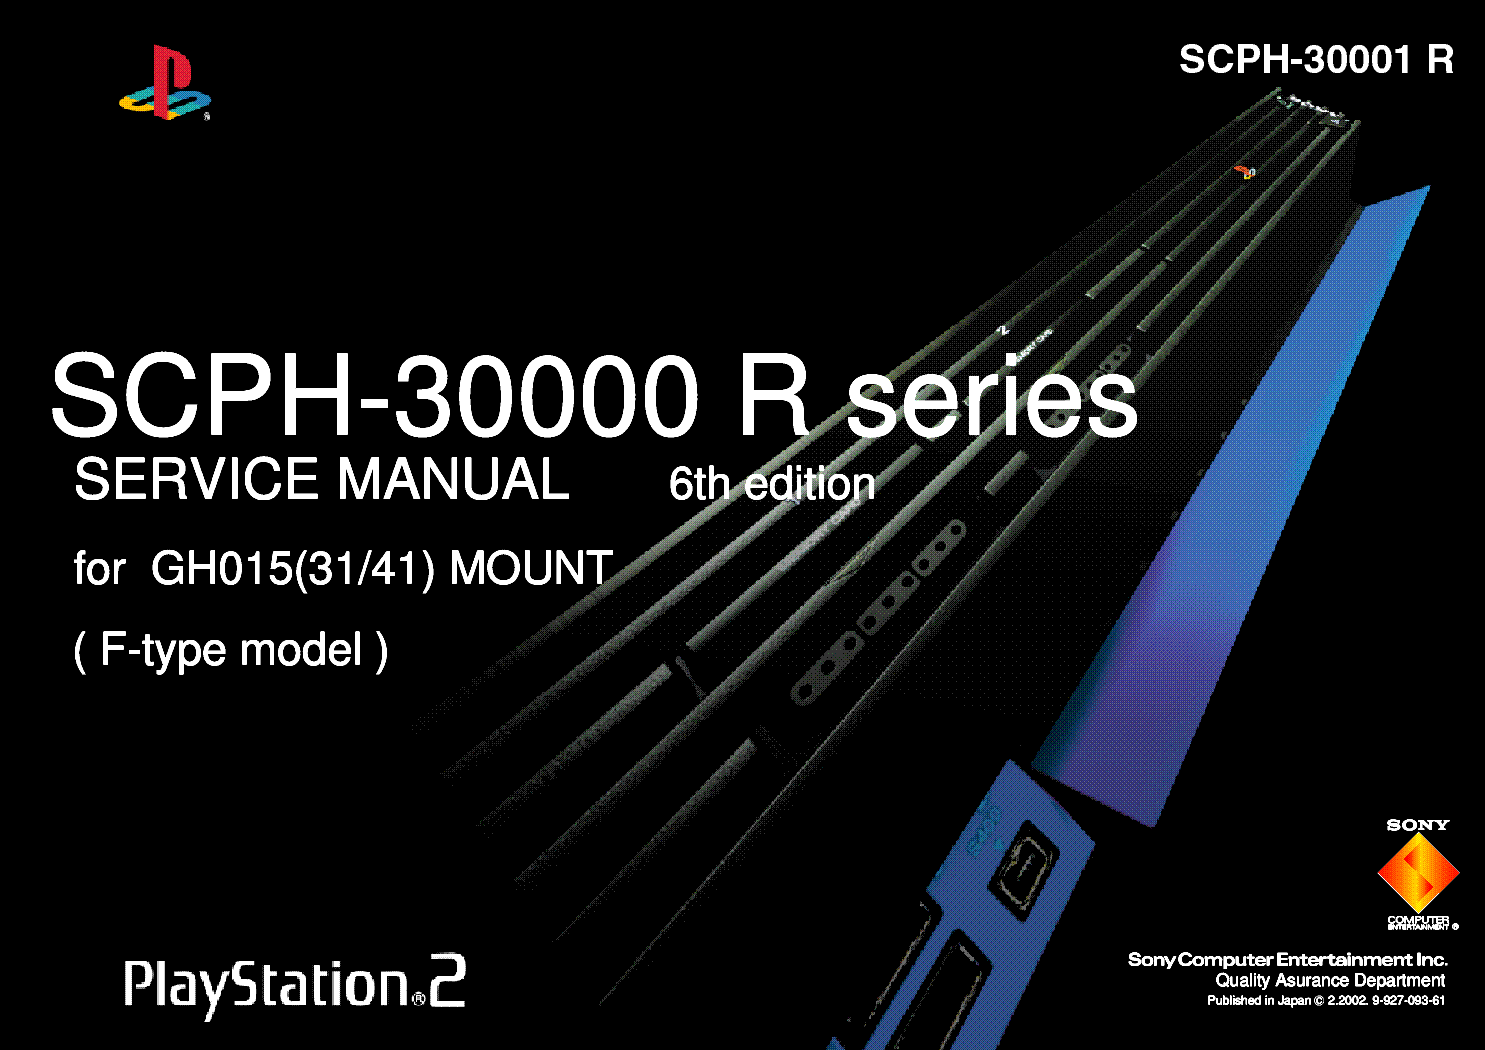 Ps2 Scph 30001: SONY SCPH-30000R SCPH-30001R SERIES 6TH Service Manual